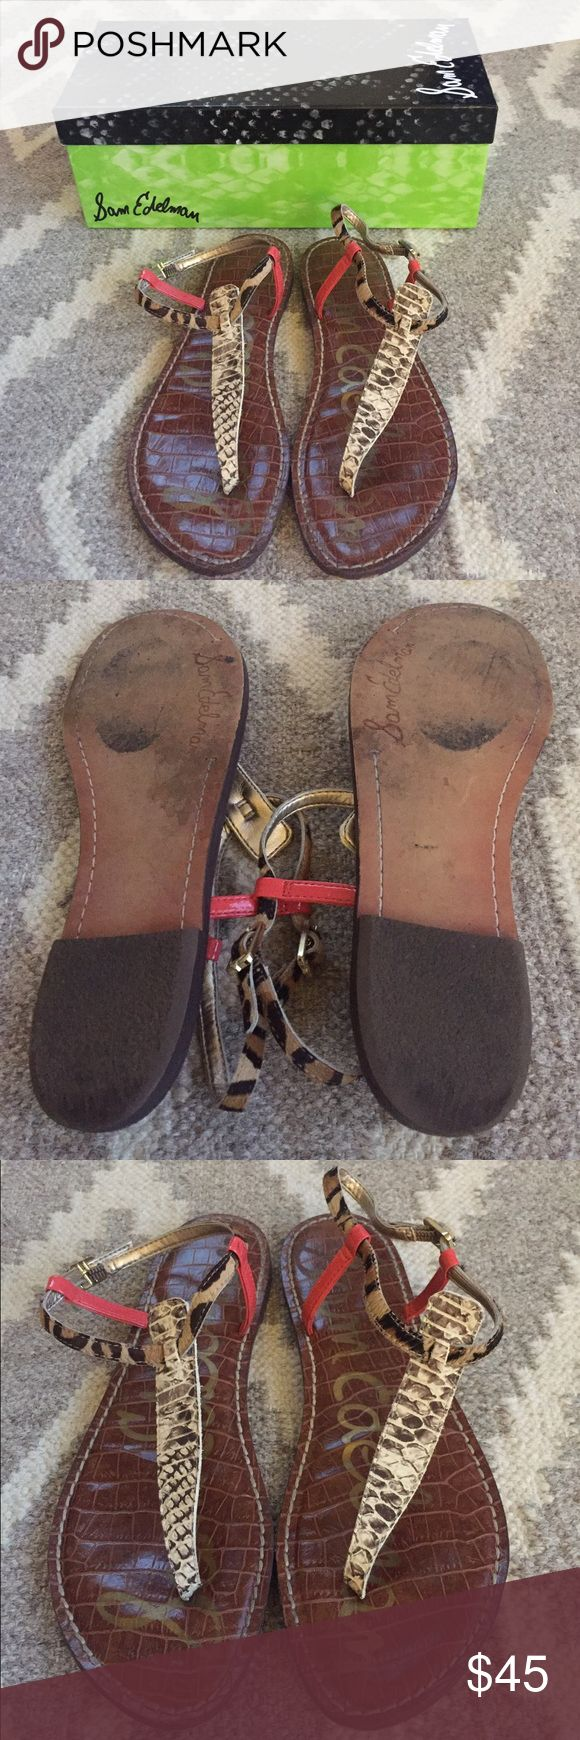 Sam Edelman Gigi Sandals Super cute snakeskin and leopard calf hair thong sandals. Some wear on the soles but overall in very good condition! Comes with shoebox. Sam Edelman Shoes Sandals